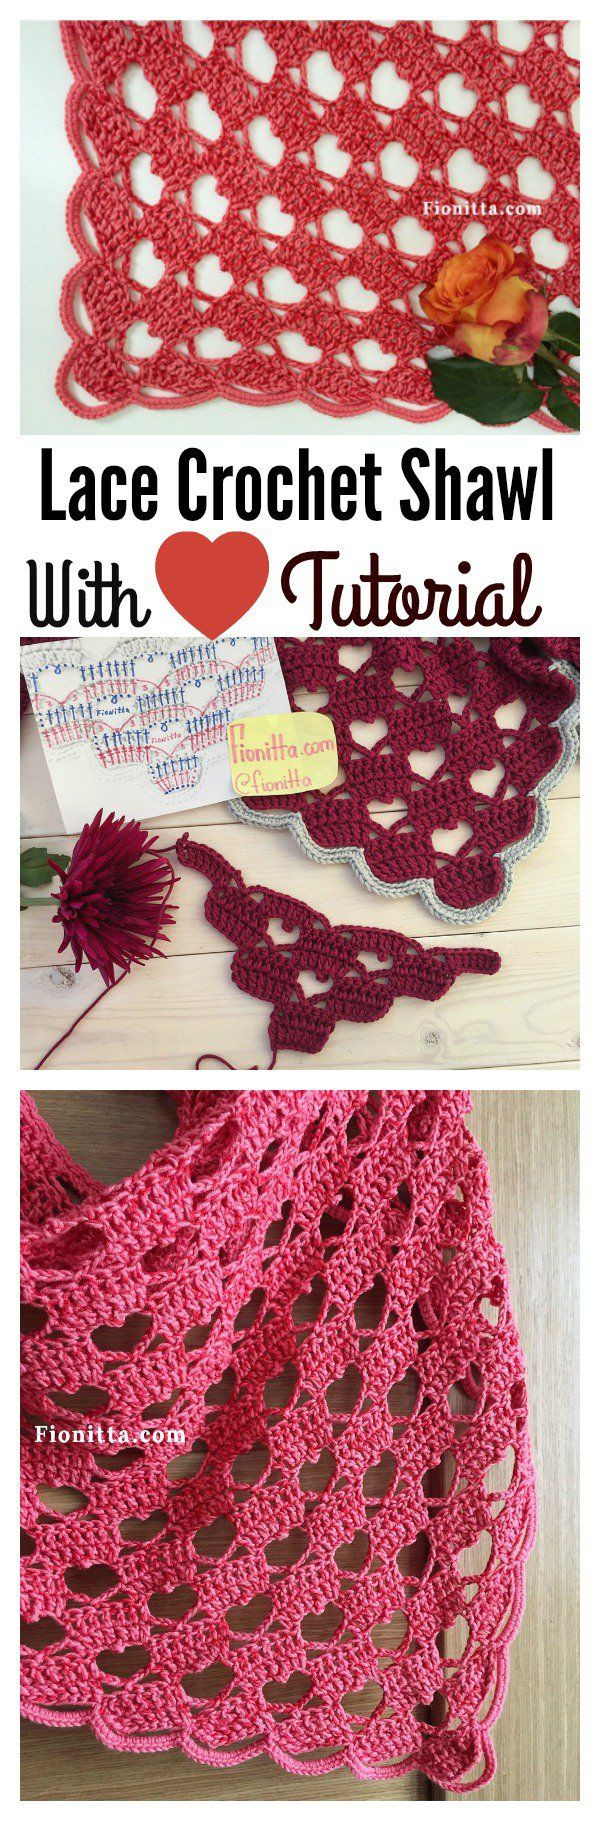 Awesome Best 25 Crochet Shawl Patterns Ideas On Pinterest Crochet Shawl Tutorial Of Attractive 40 Ideas Crochet Shawl Tutorial